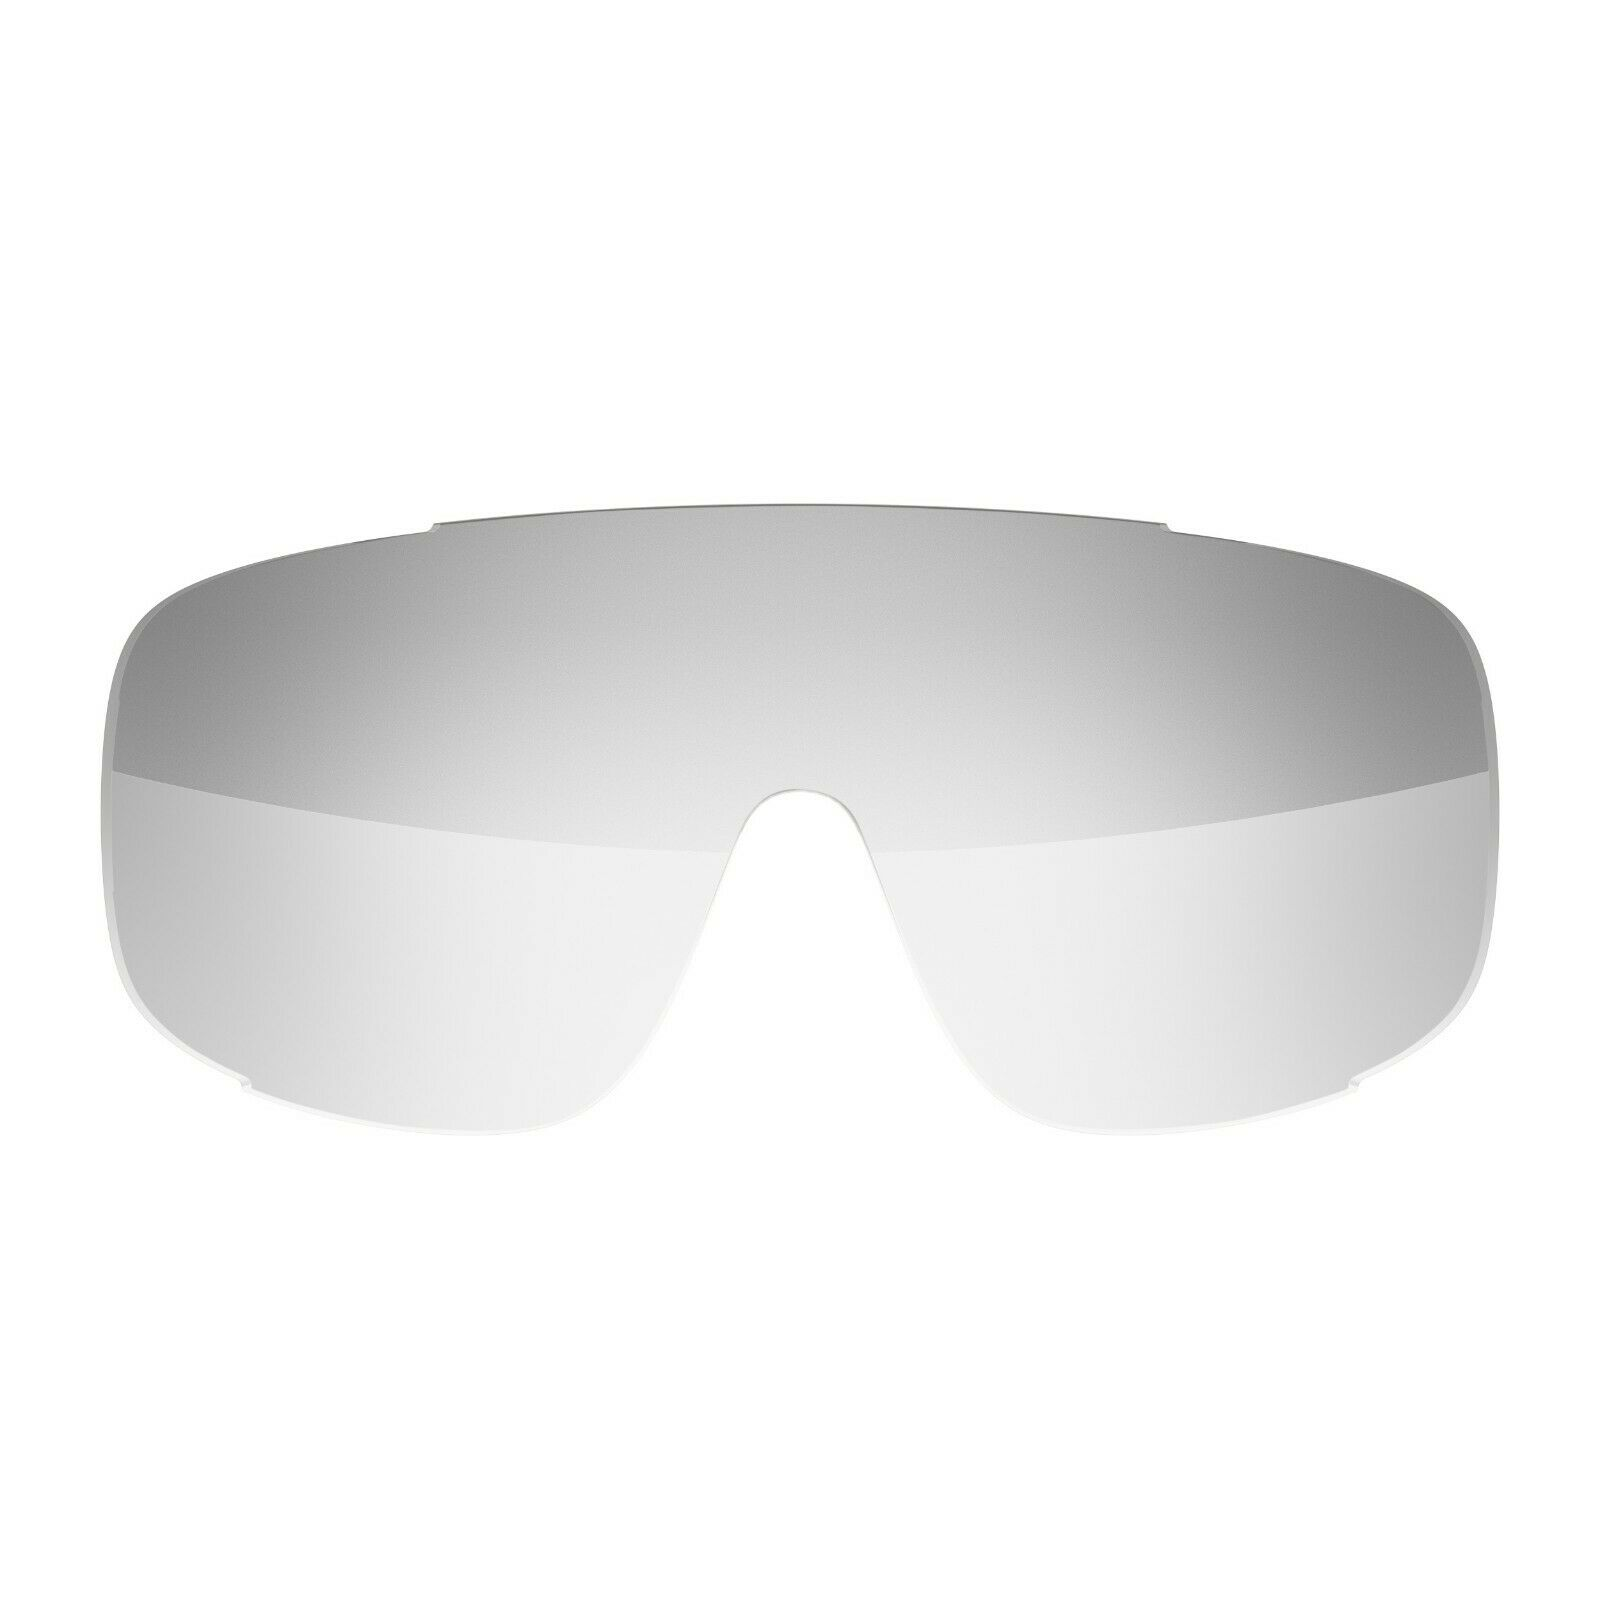 Poc  aspire performance replacement lens clear  find your favorite here